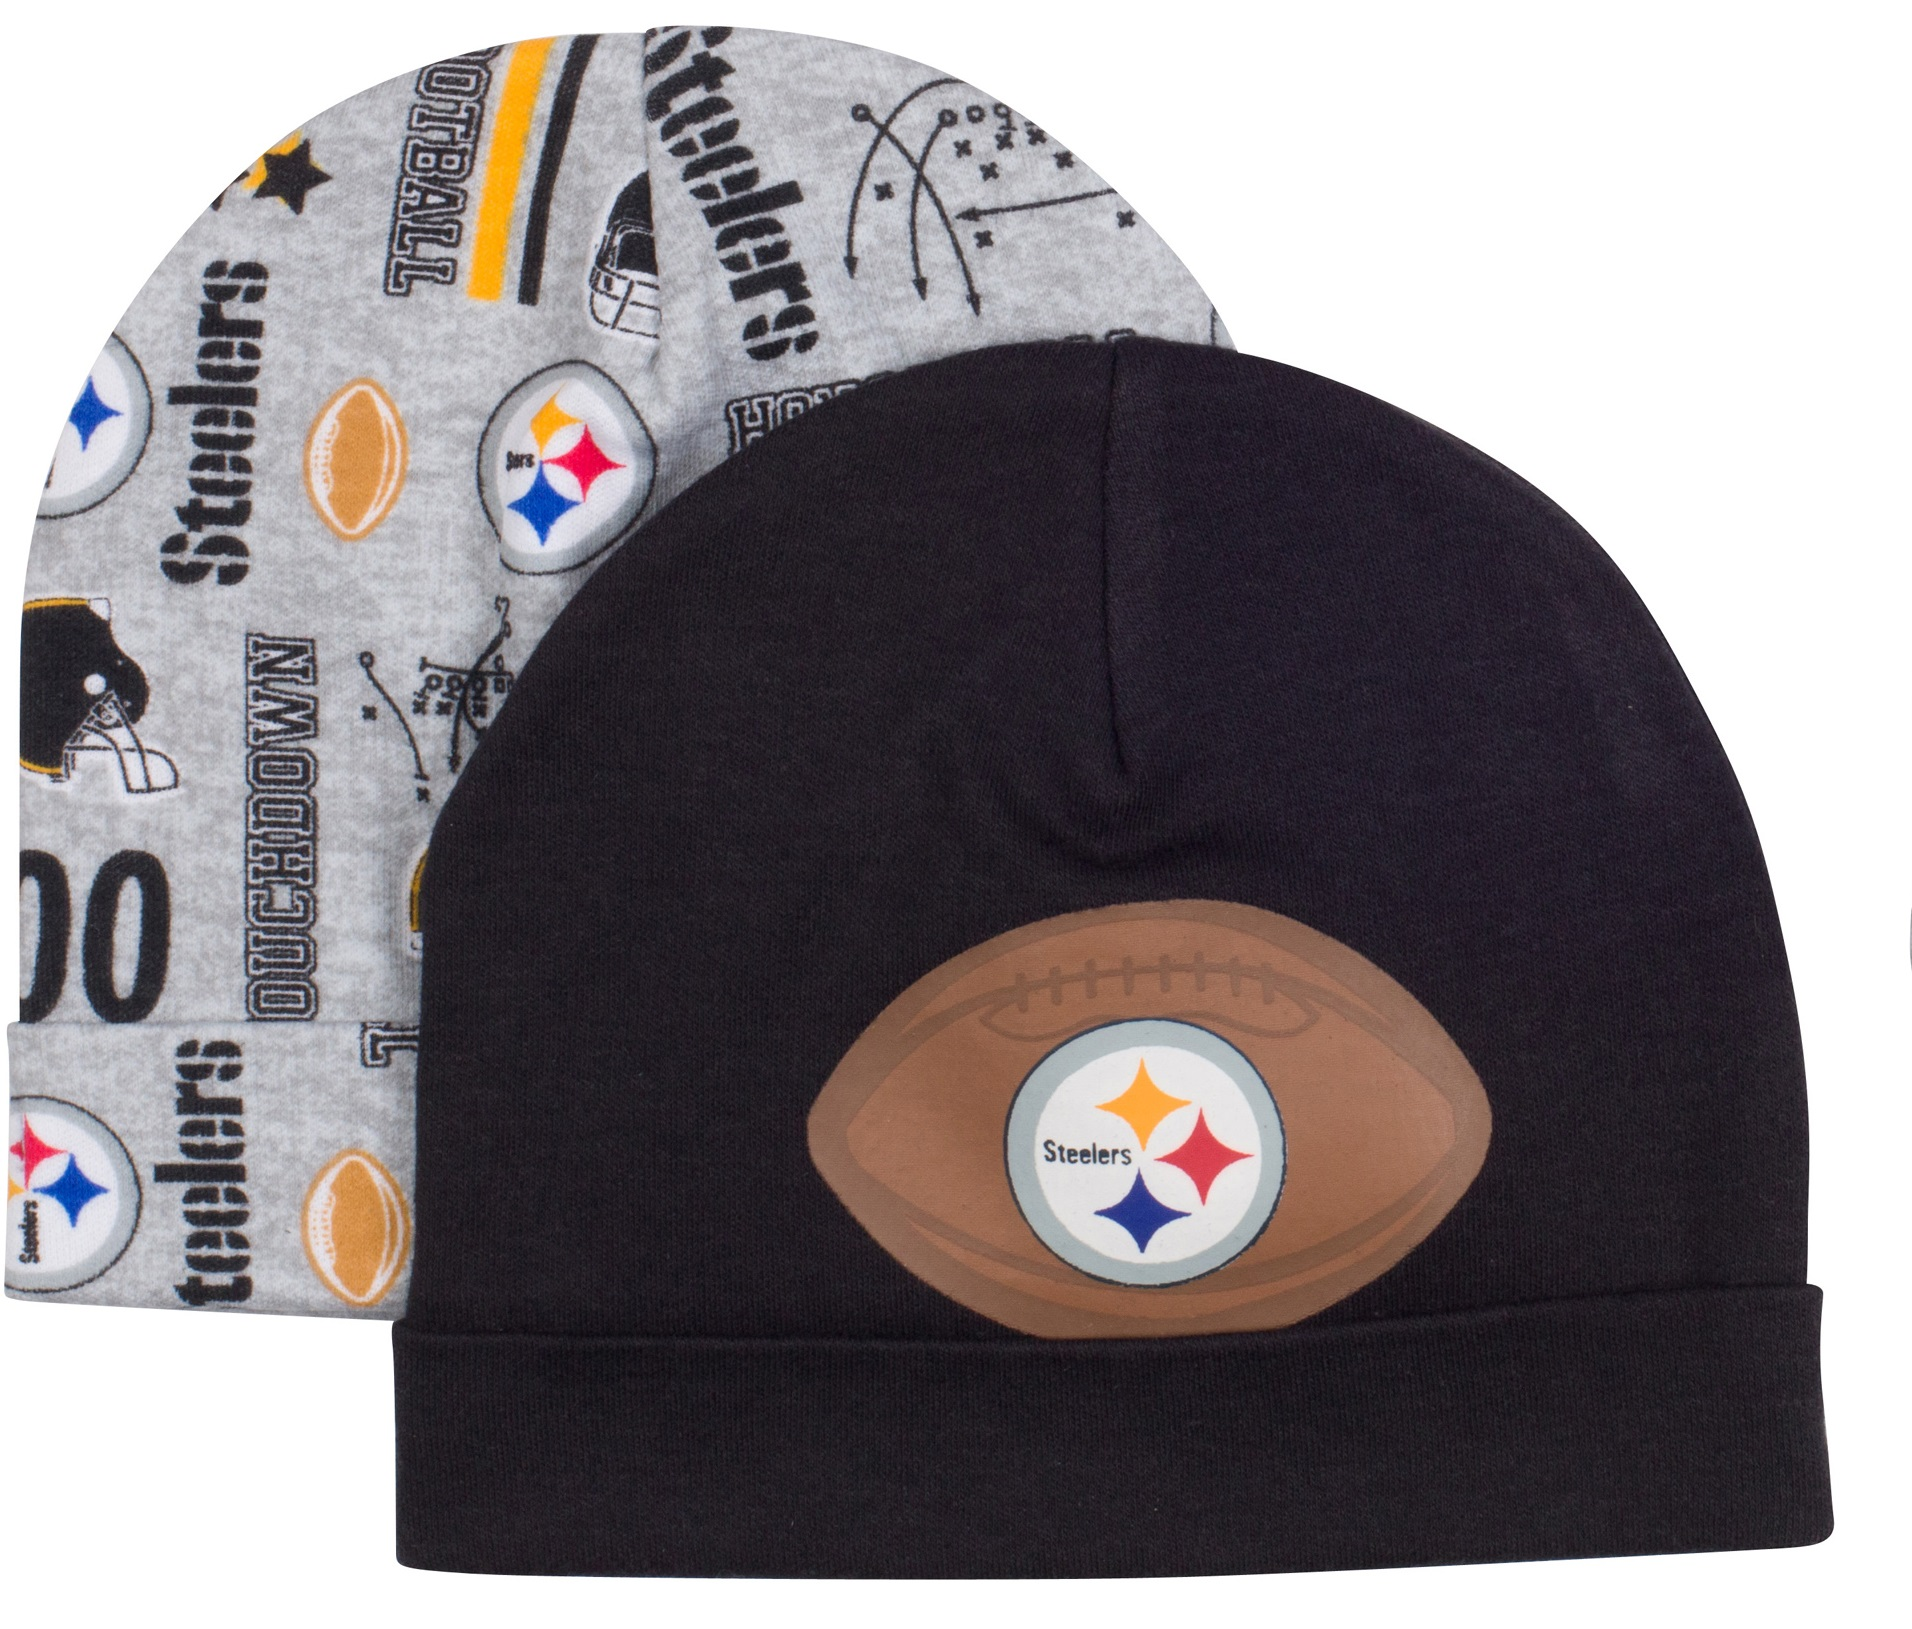 steelers-baby-2hats-2bootie-set-1520-hats.jpg